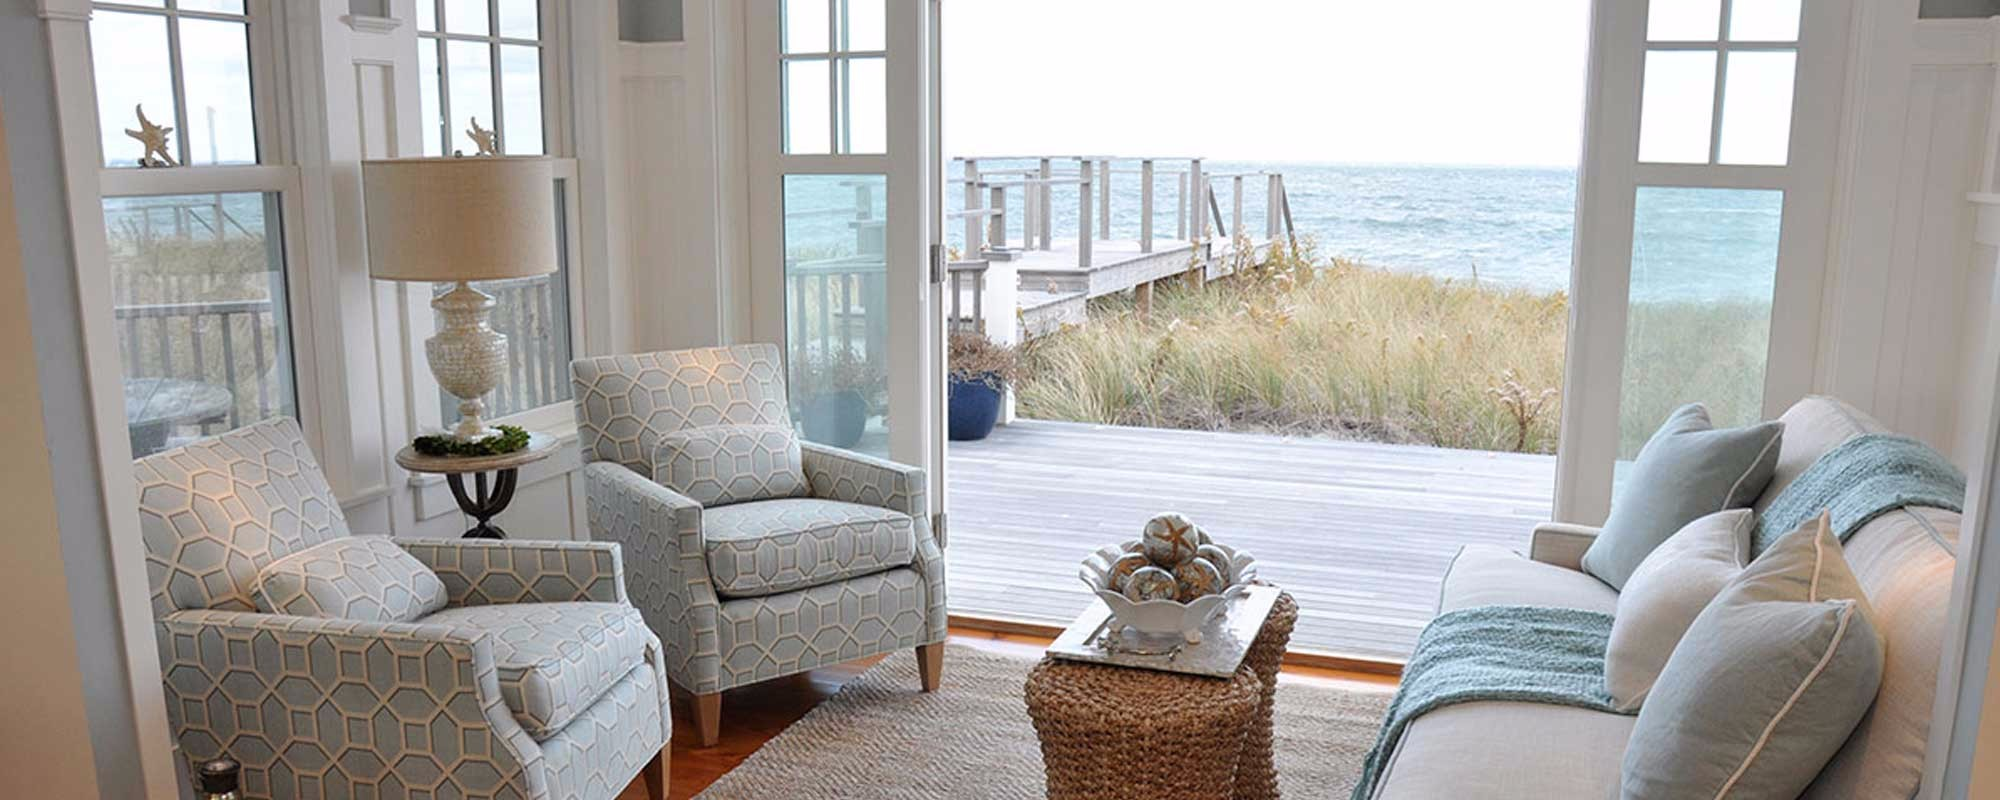 Interior design cape cod ma casabella interiors for Interiors by design